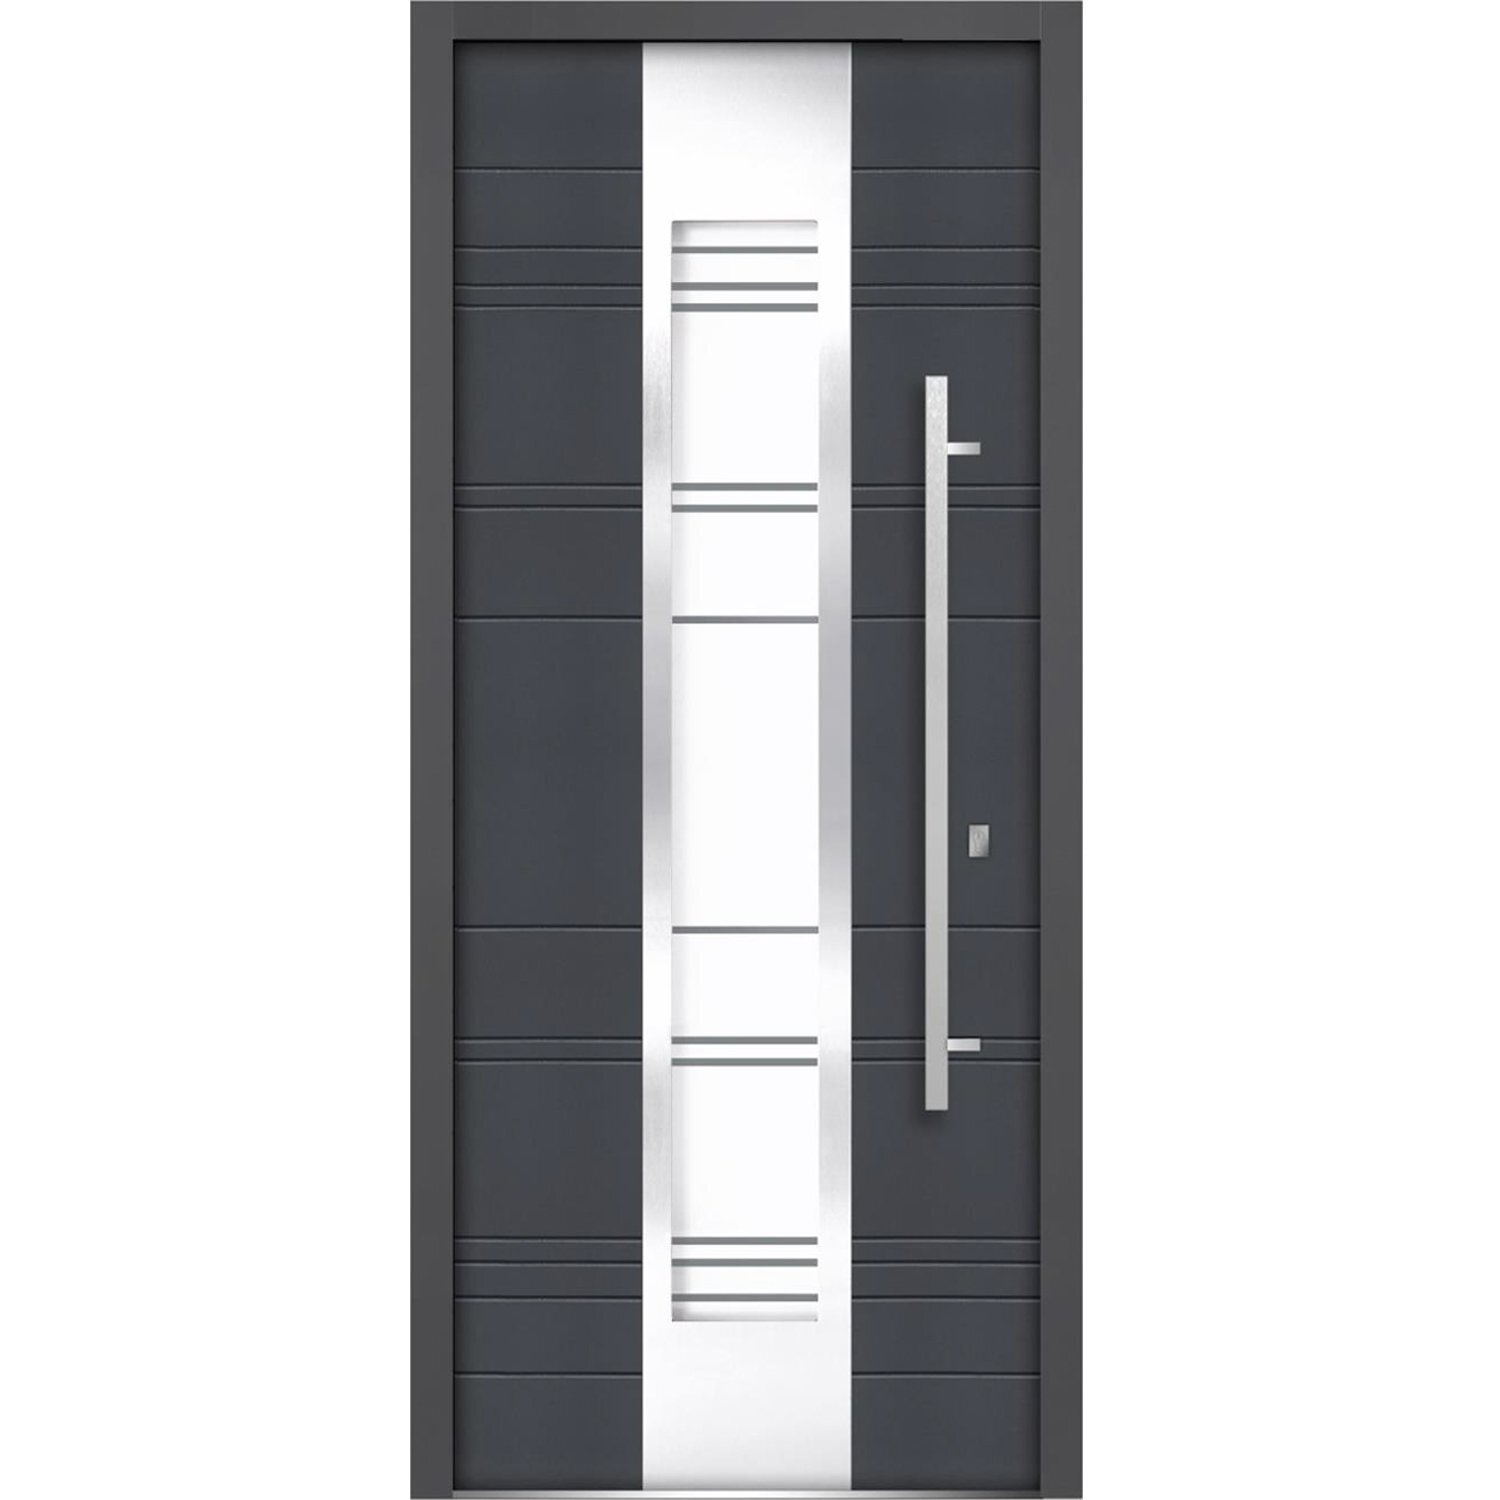 Vdomdoors Front Exterior Prehung Frosted Glass Steel Door 36 X 80 Inches Right Hand Inswing Deux 0757 Gray Graphite Lite Inserts Single Modern Painted Wayfair